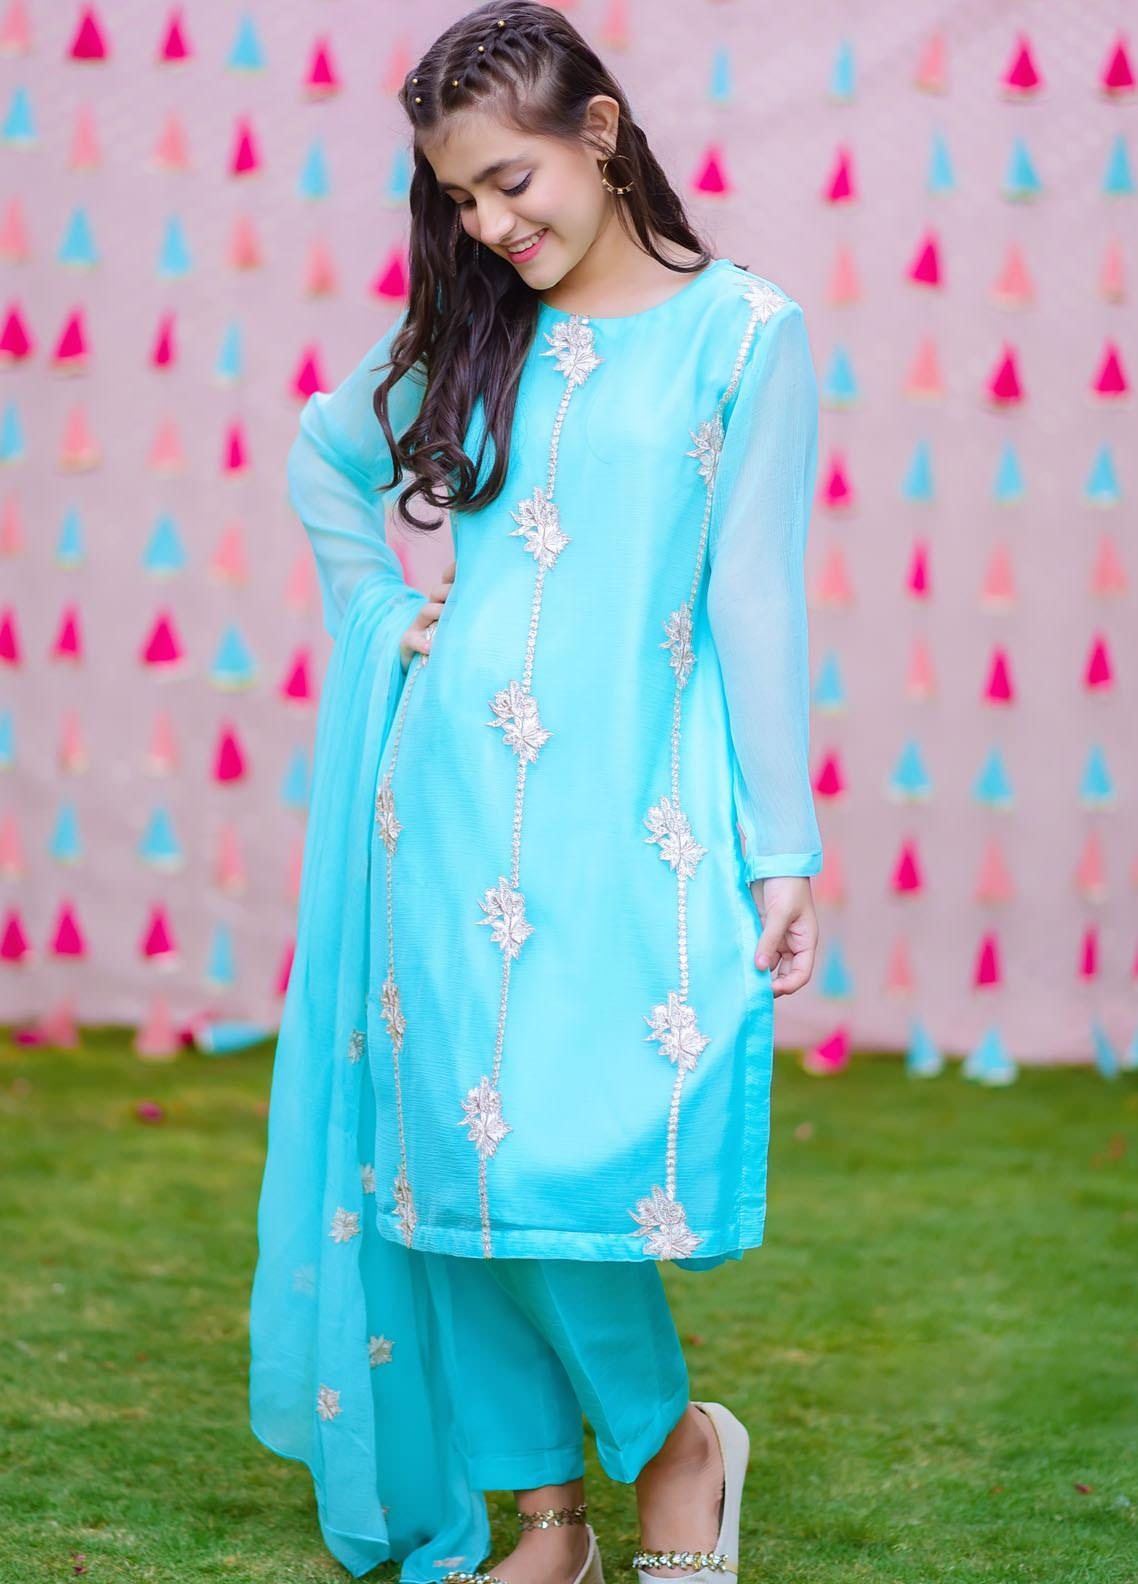 Ochre Chiffon Fancy Girls 3 Piece -  OFW-303 Aqua Blue